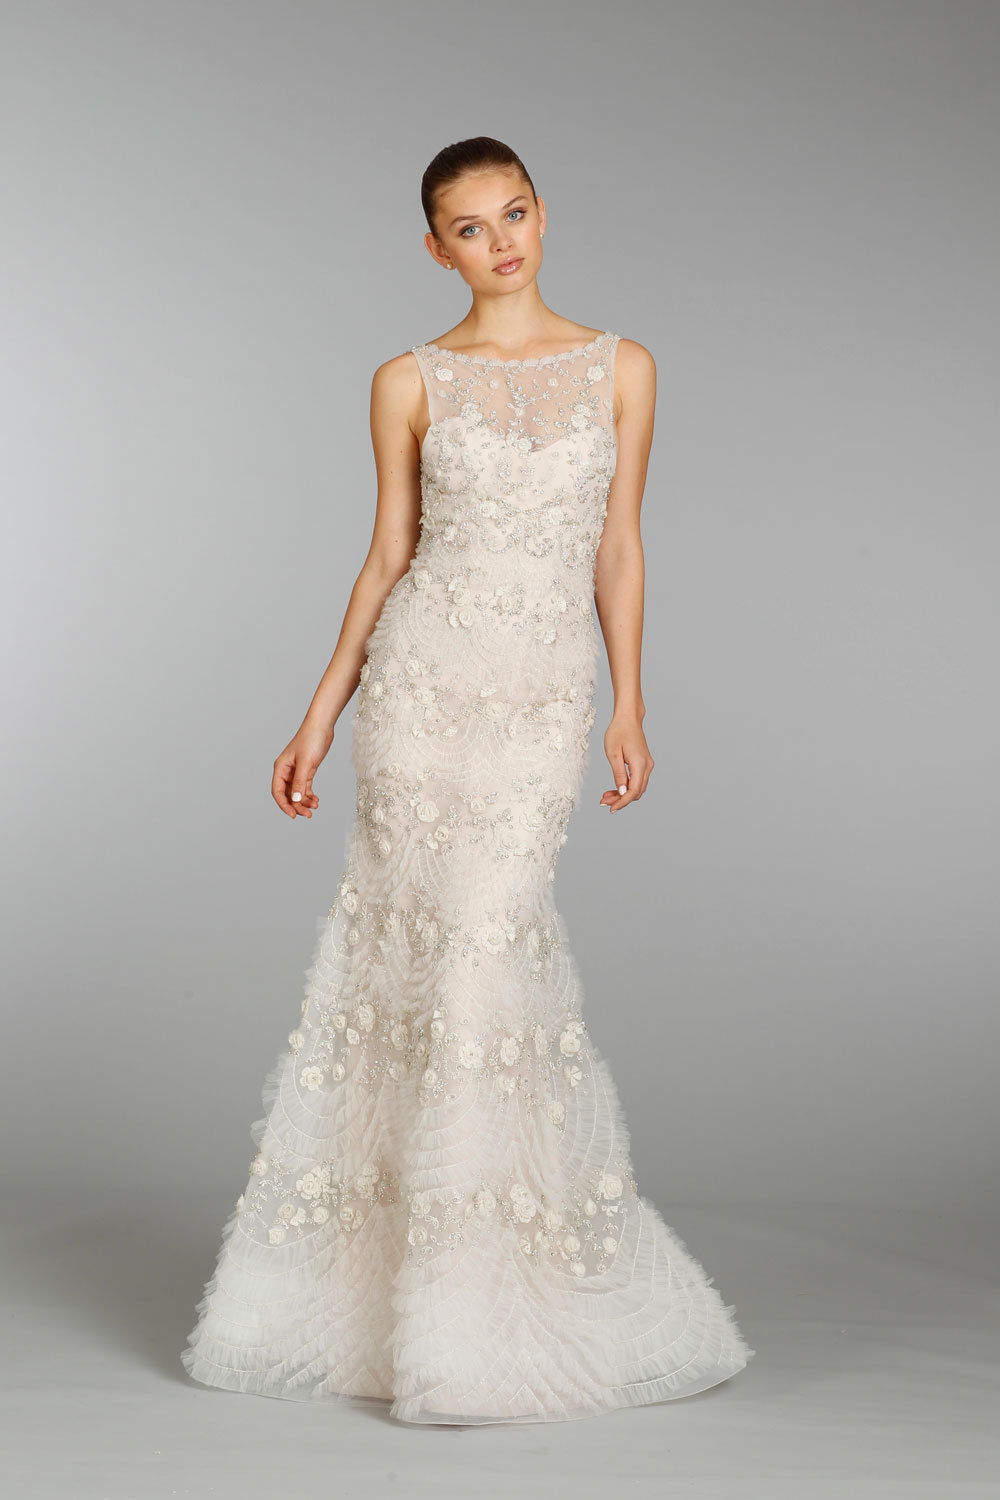 Lazaro-wedding-dress-fall-2013-bridal-3362.full